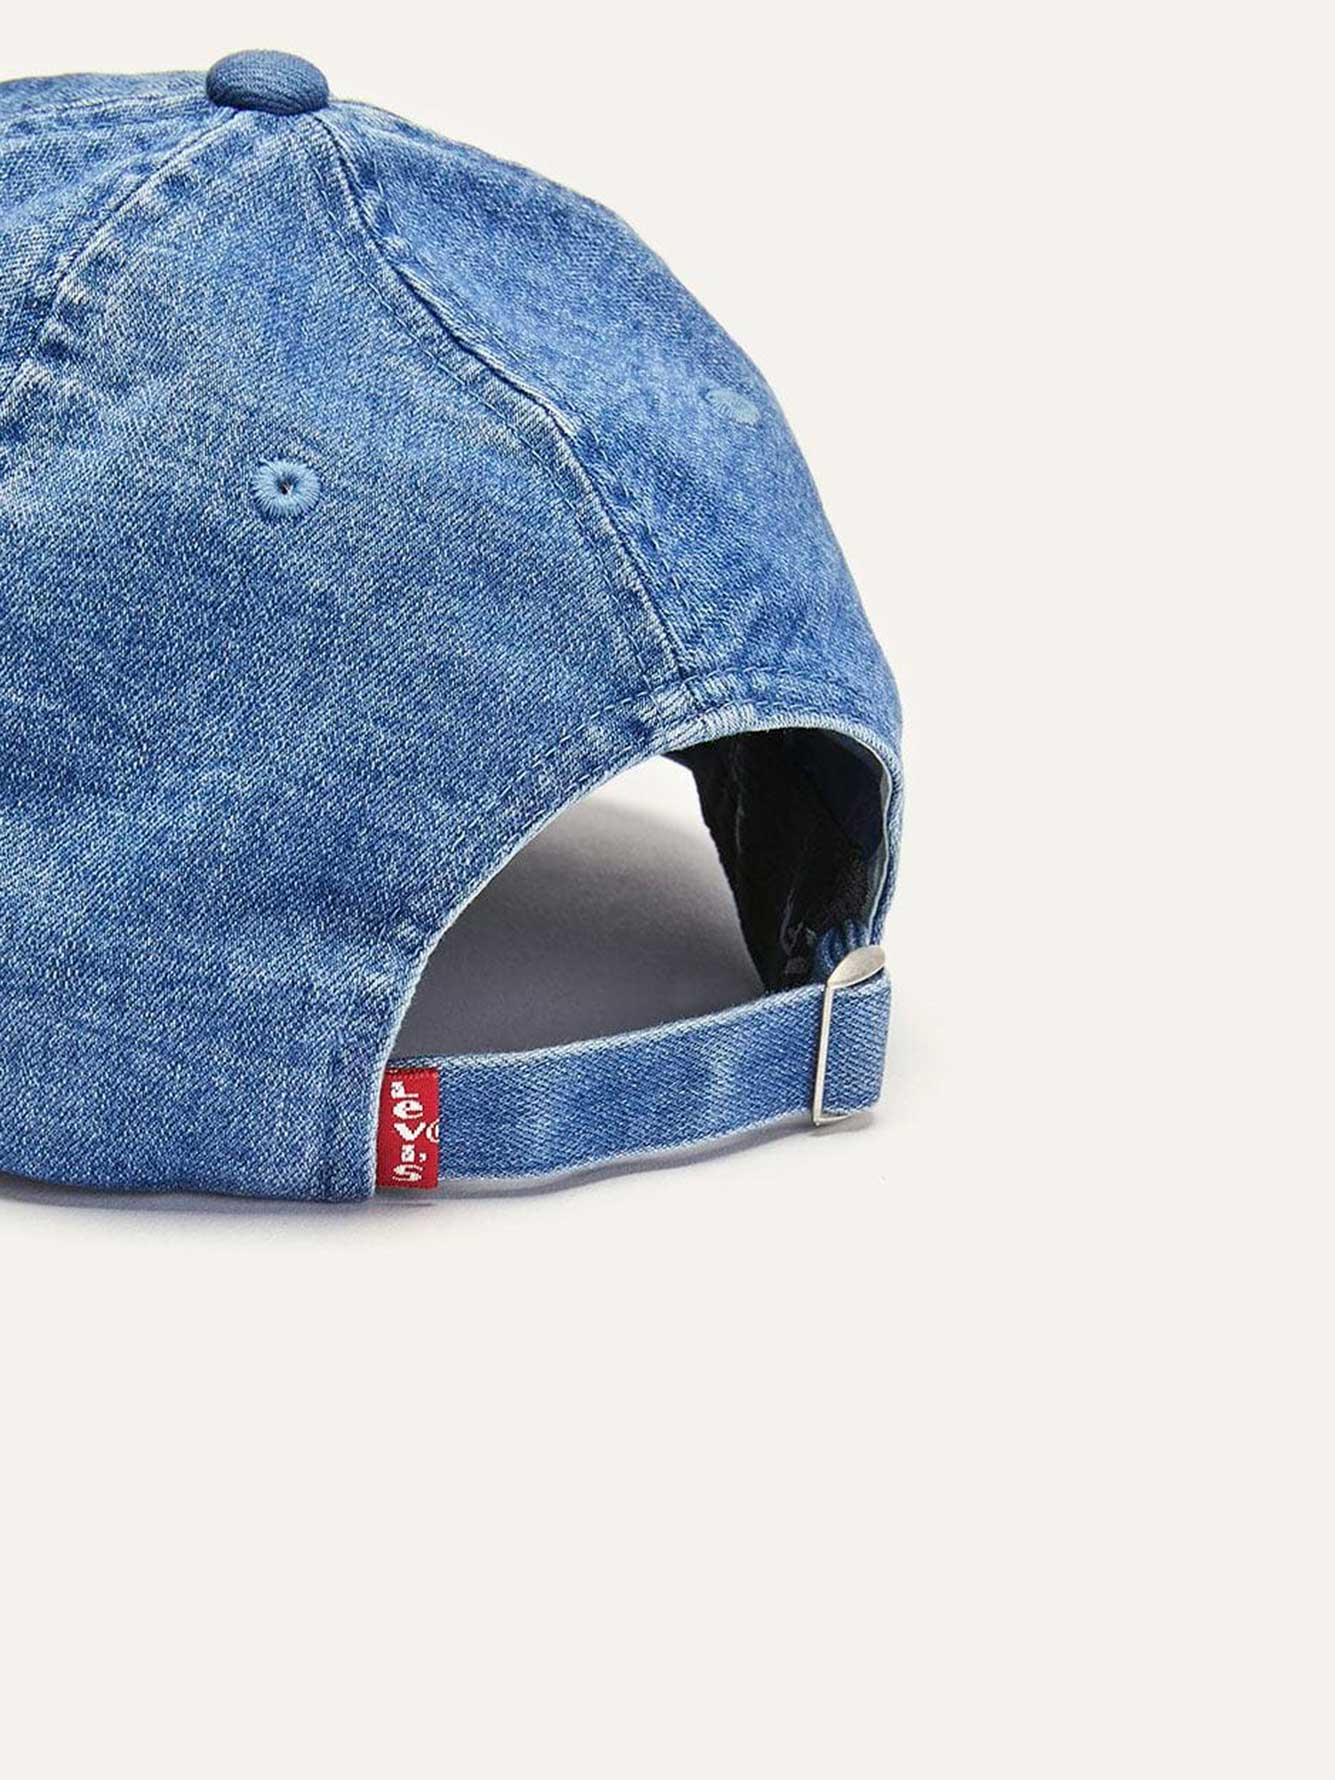 Denim Cap - Levi's